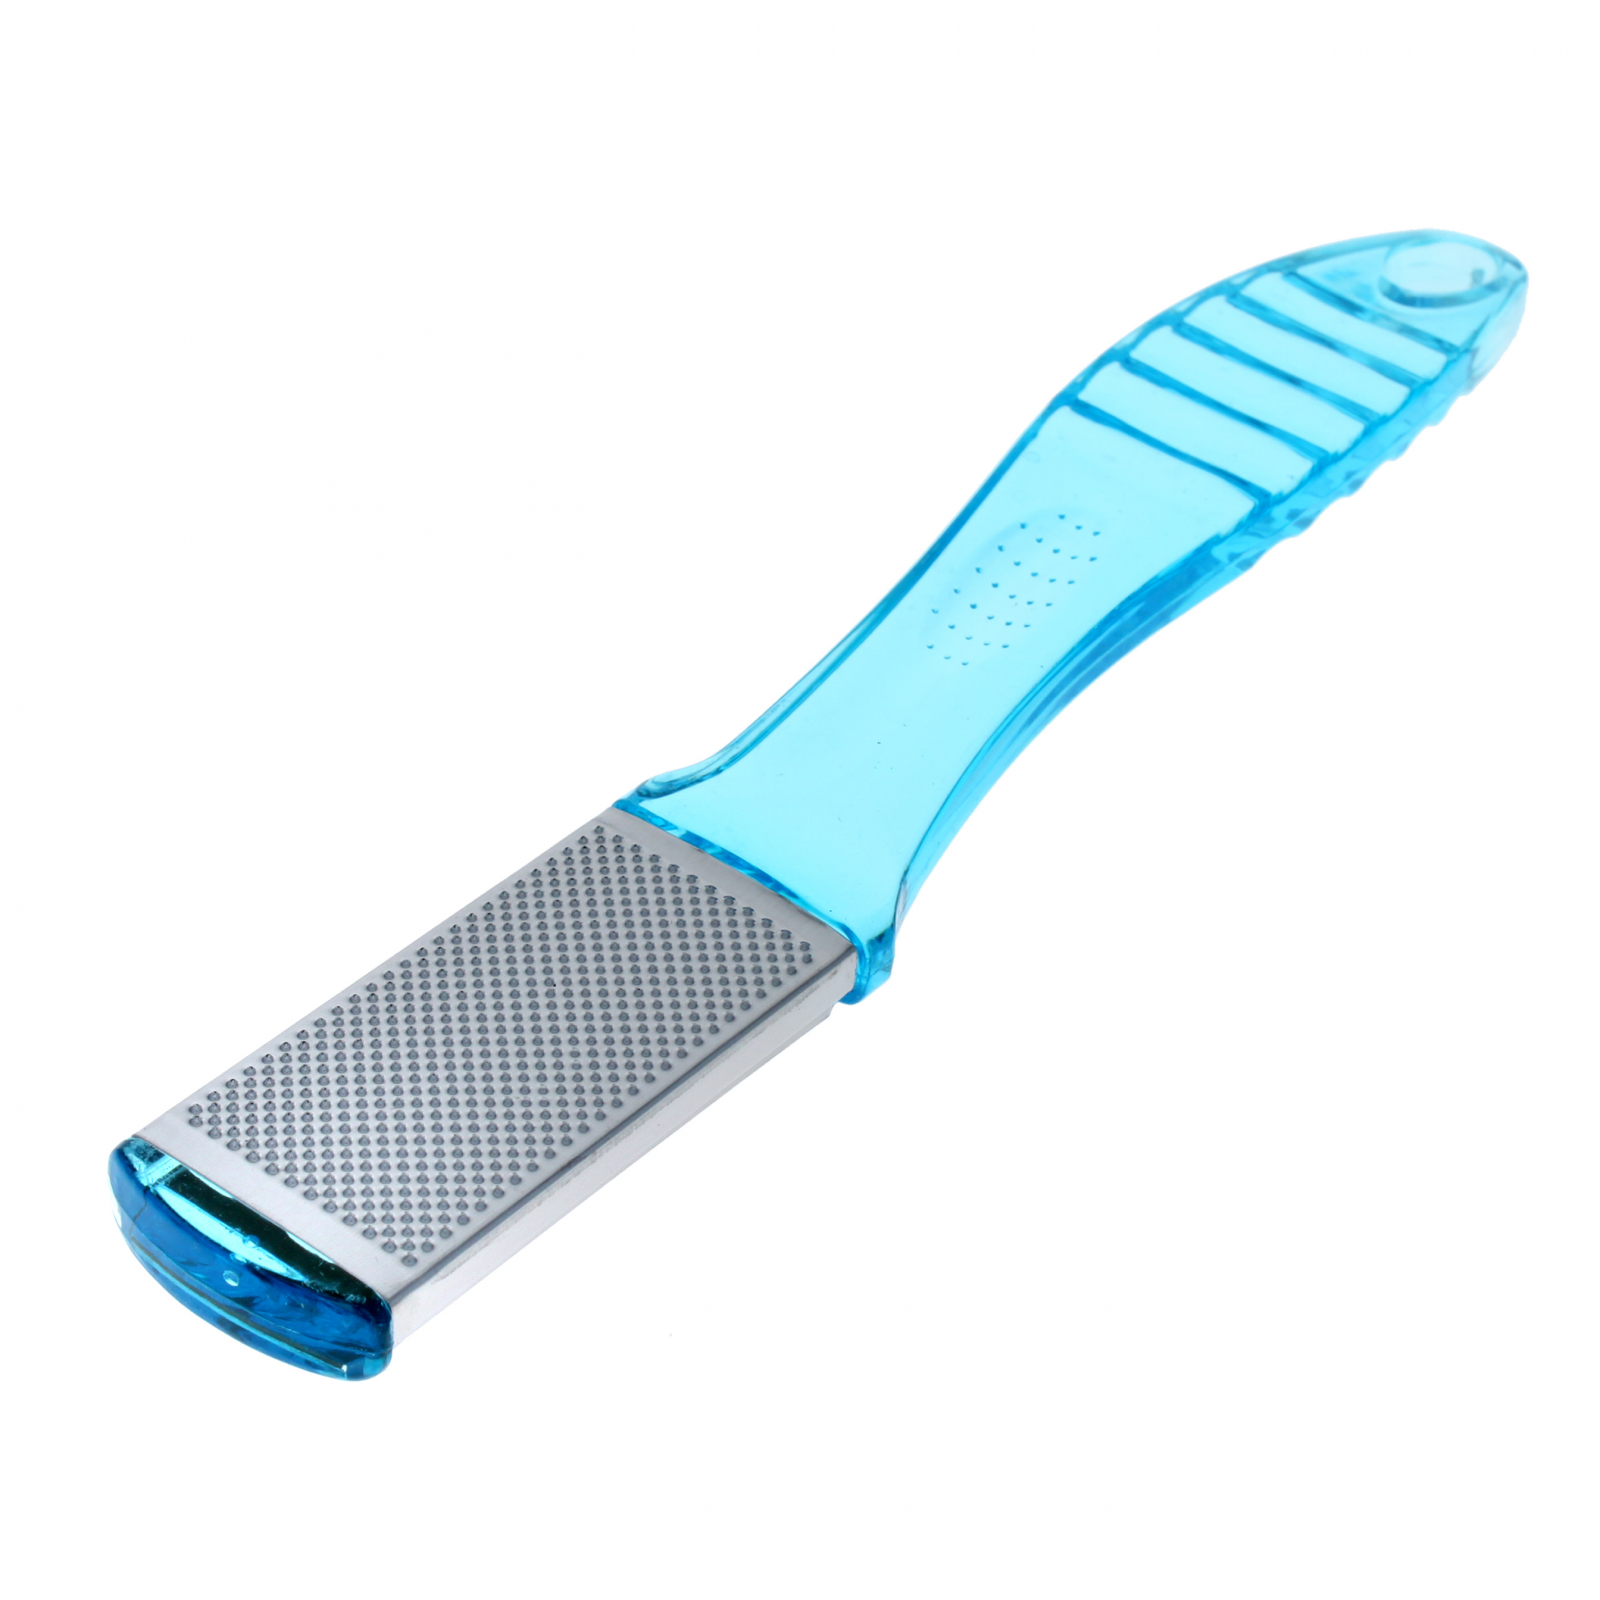 Home Essentials Manicure Pedicure Foot Scrubber File - Blue